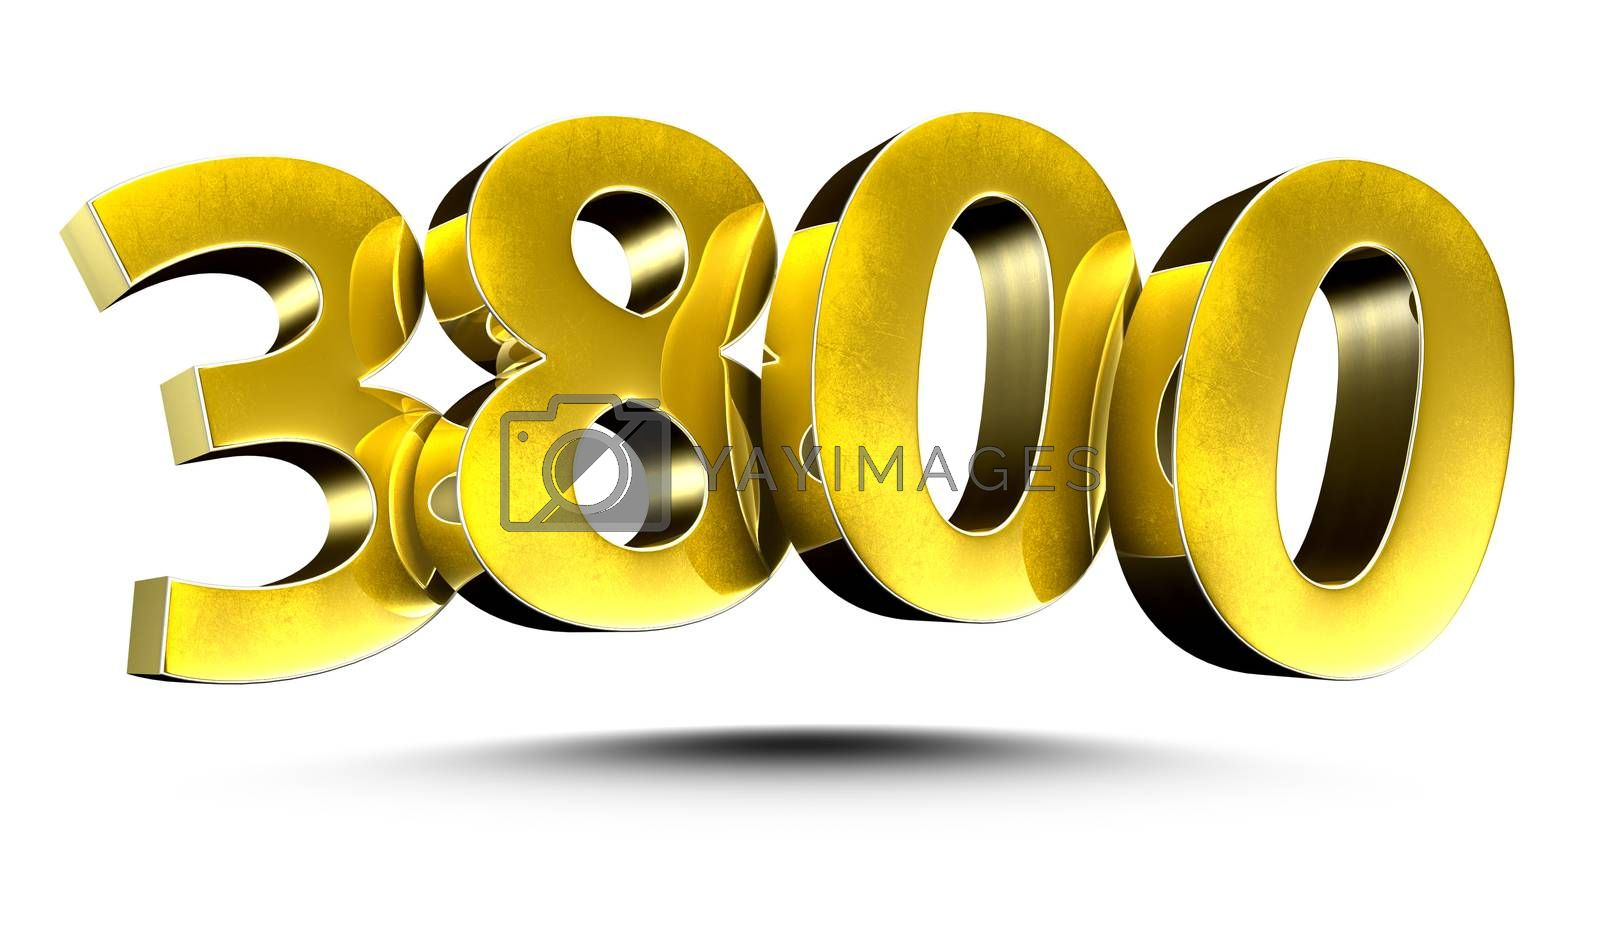 3D illustration Numbers 3800 Gold isolated on a white background.(with Clipping Path)